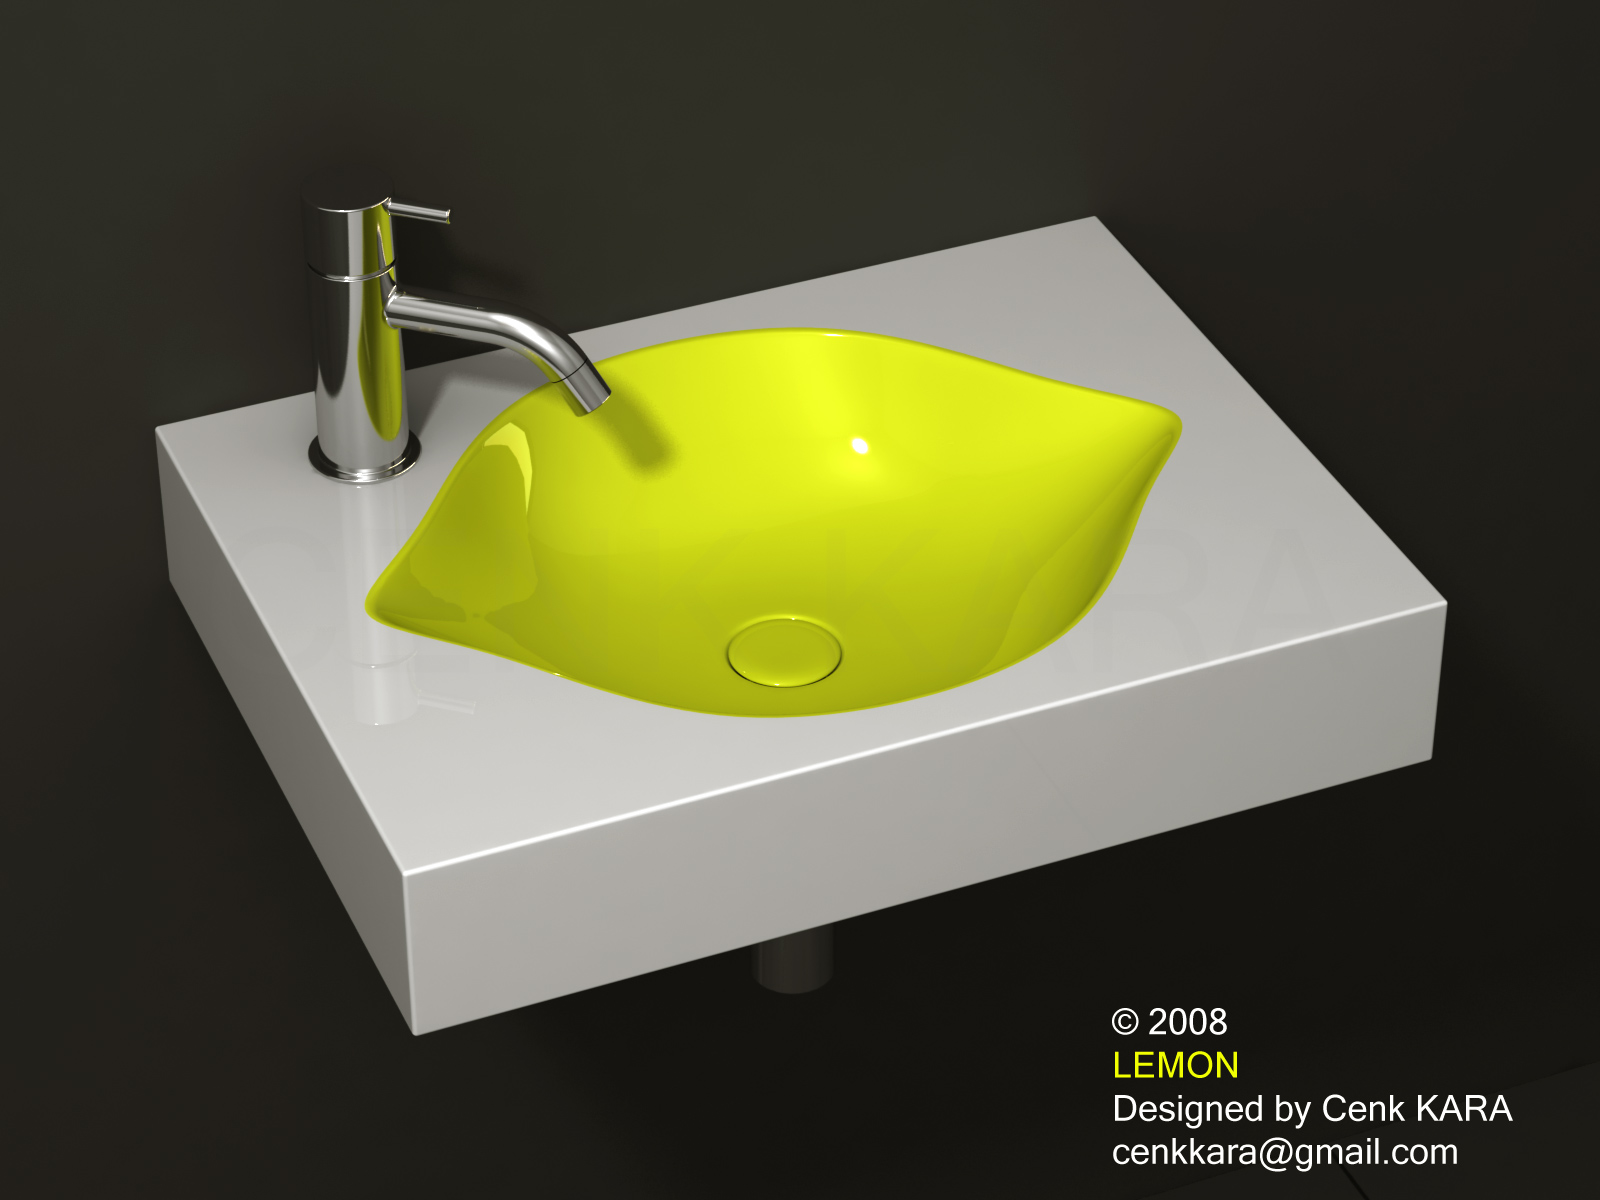 Cenk kara designer lemon sink design - Designer sinks ...